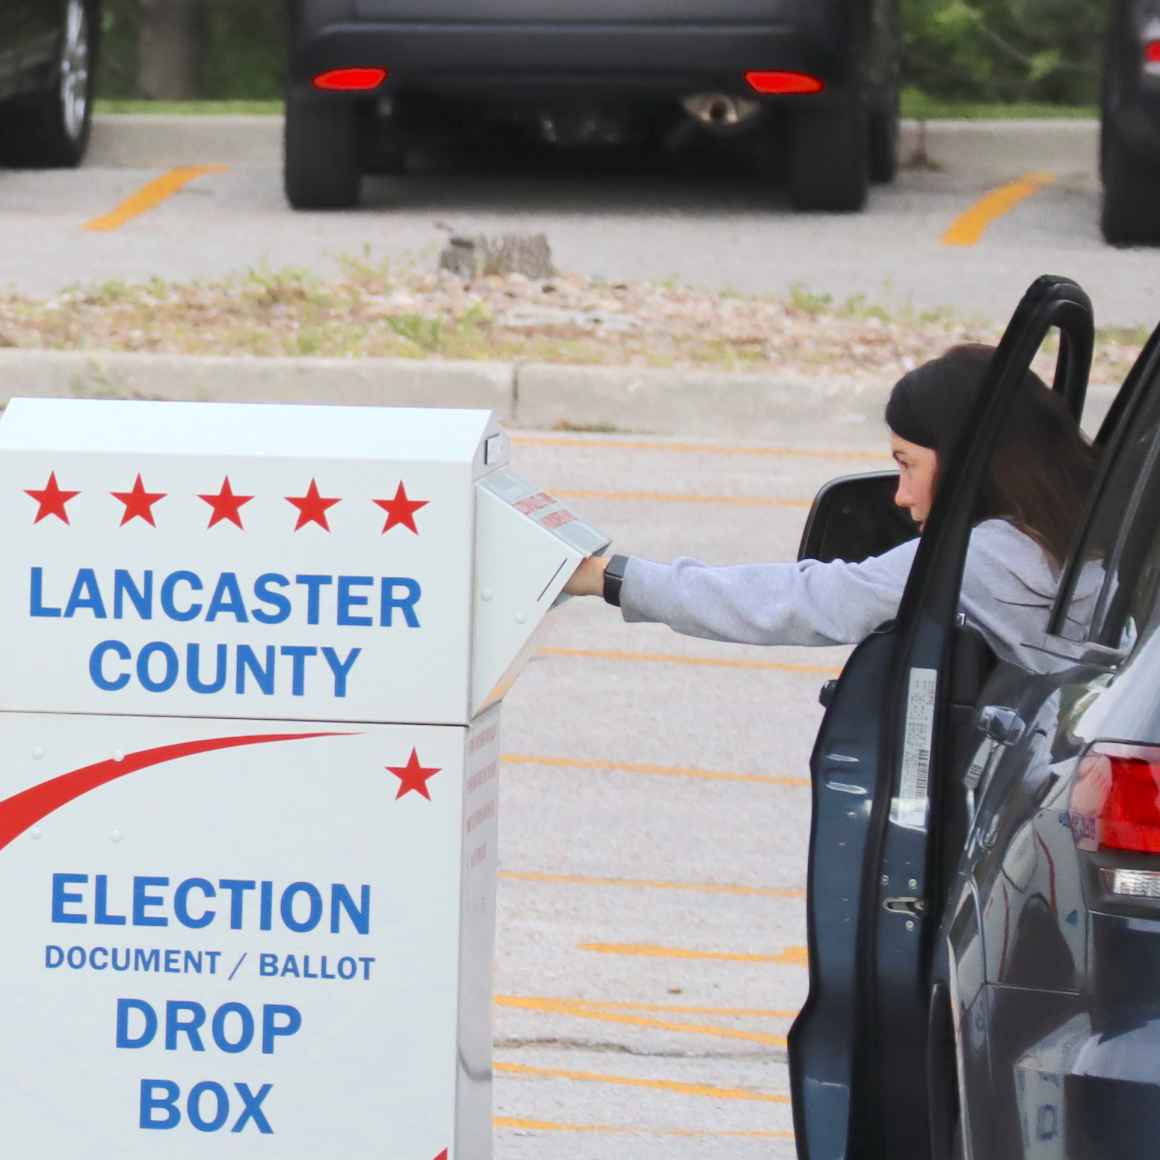 A voter drops a ballot in an election drop box.